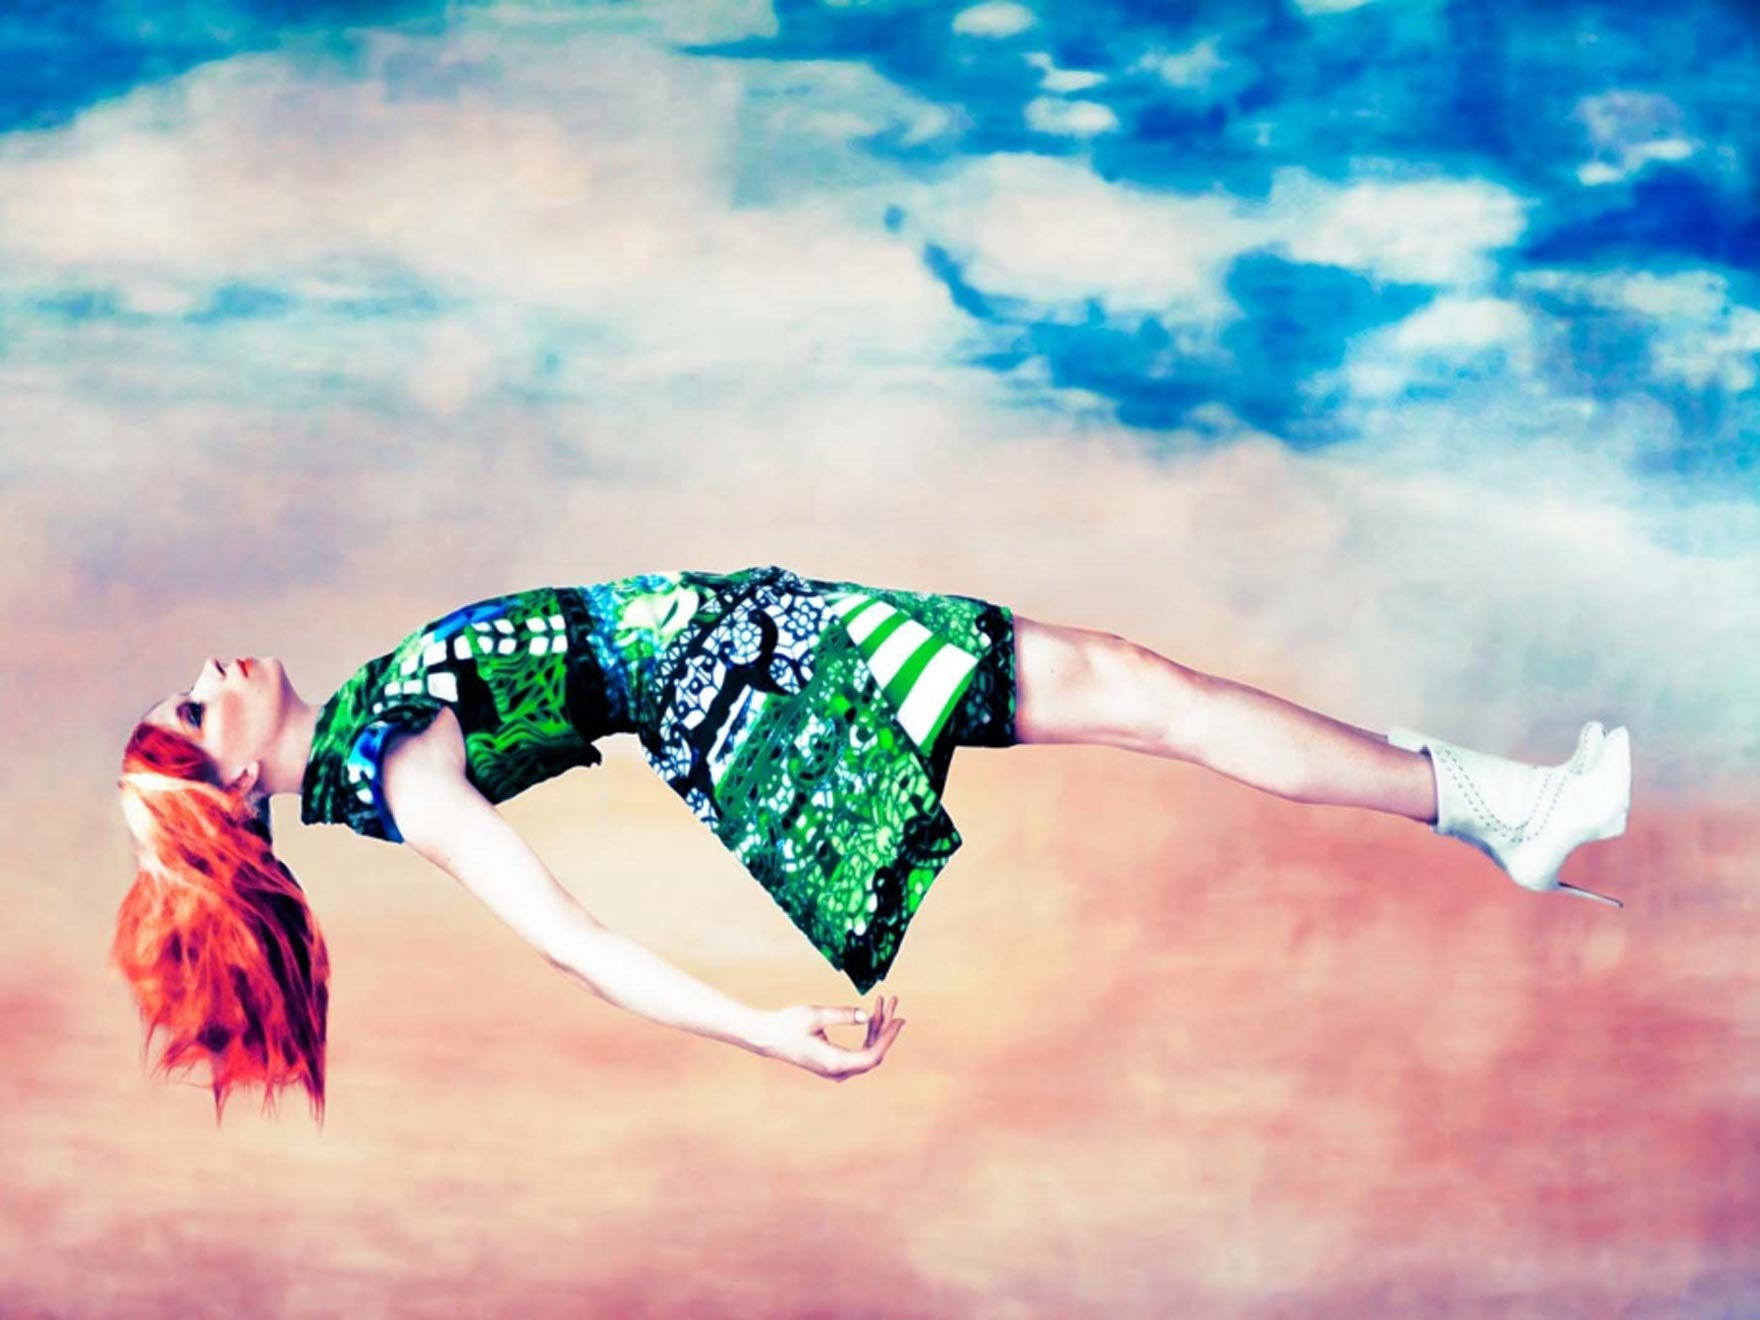 Fashion model wearing green dress, floating in the clouds